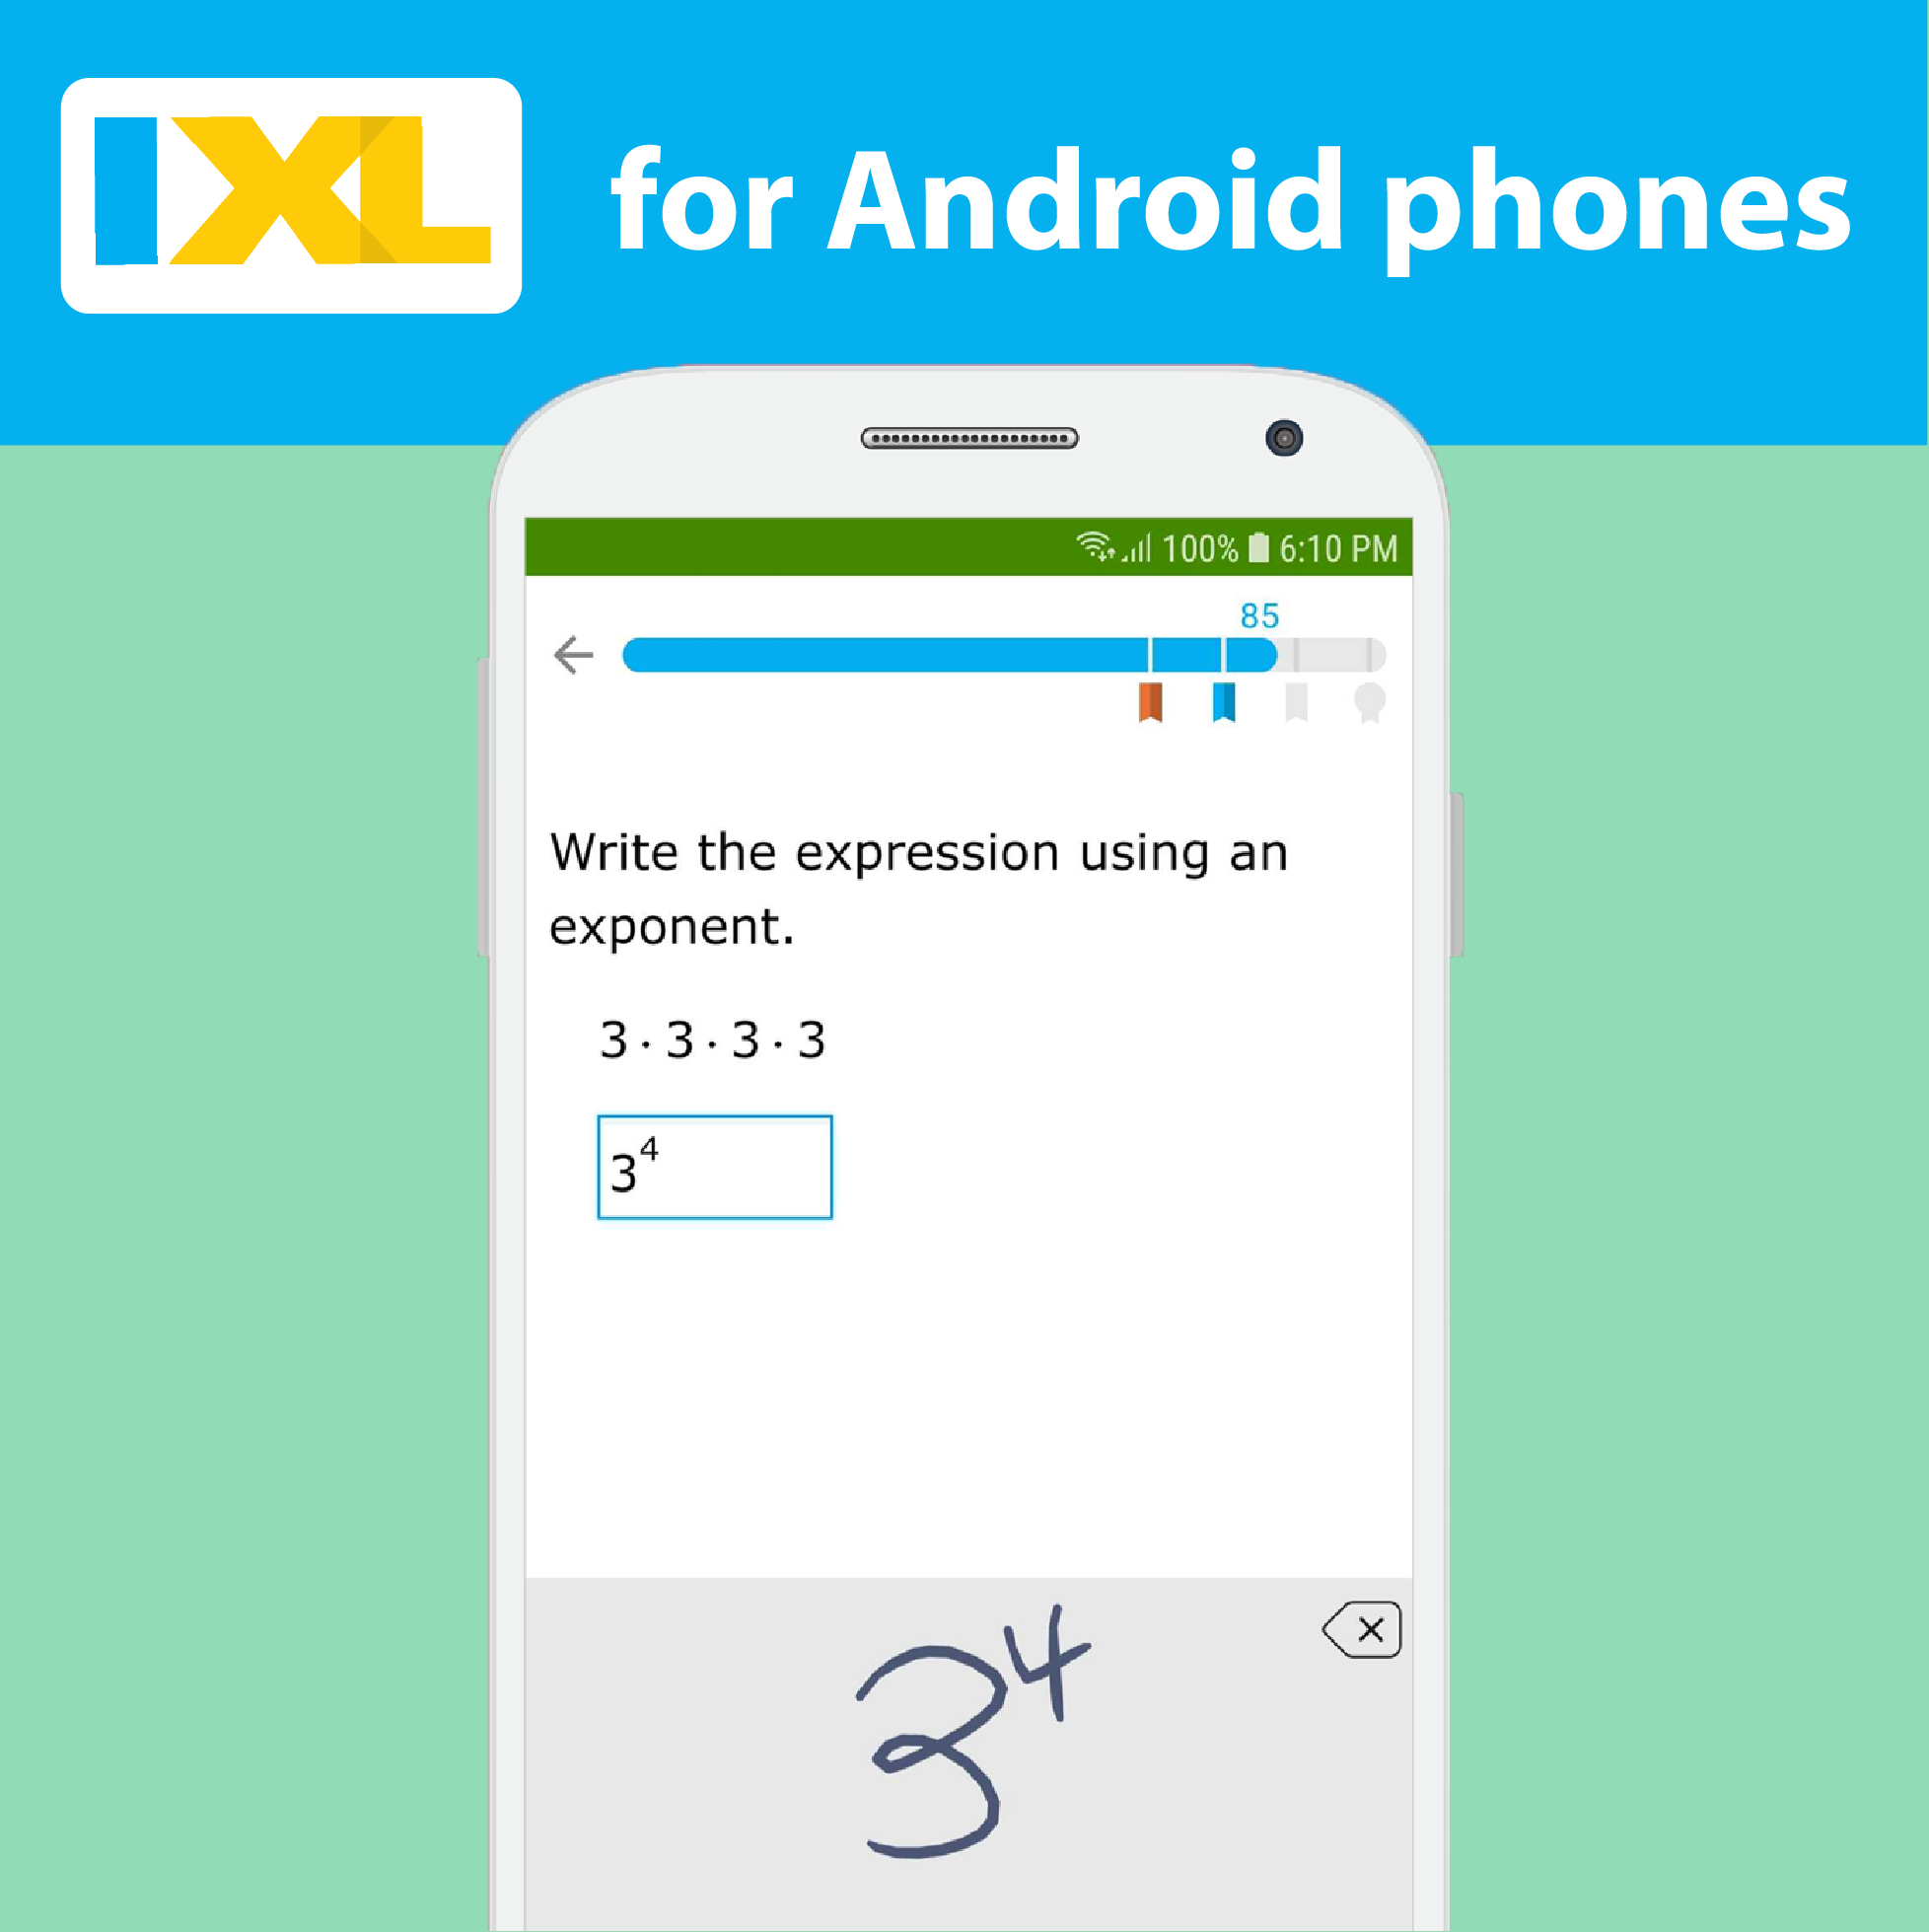 Android users rejoice! The IXL app is now available for Android phones.